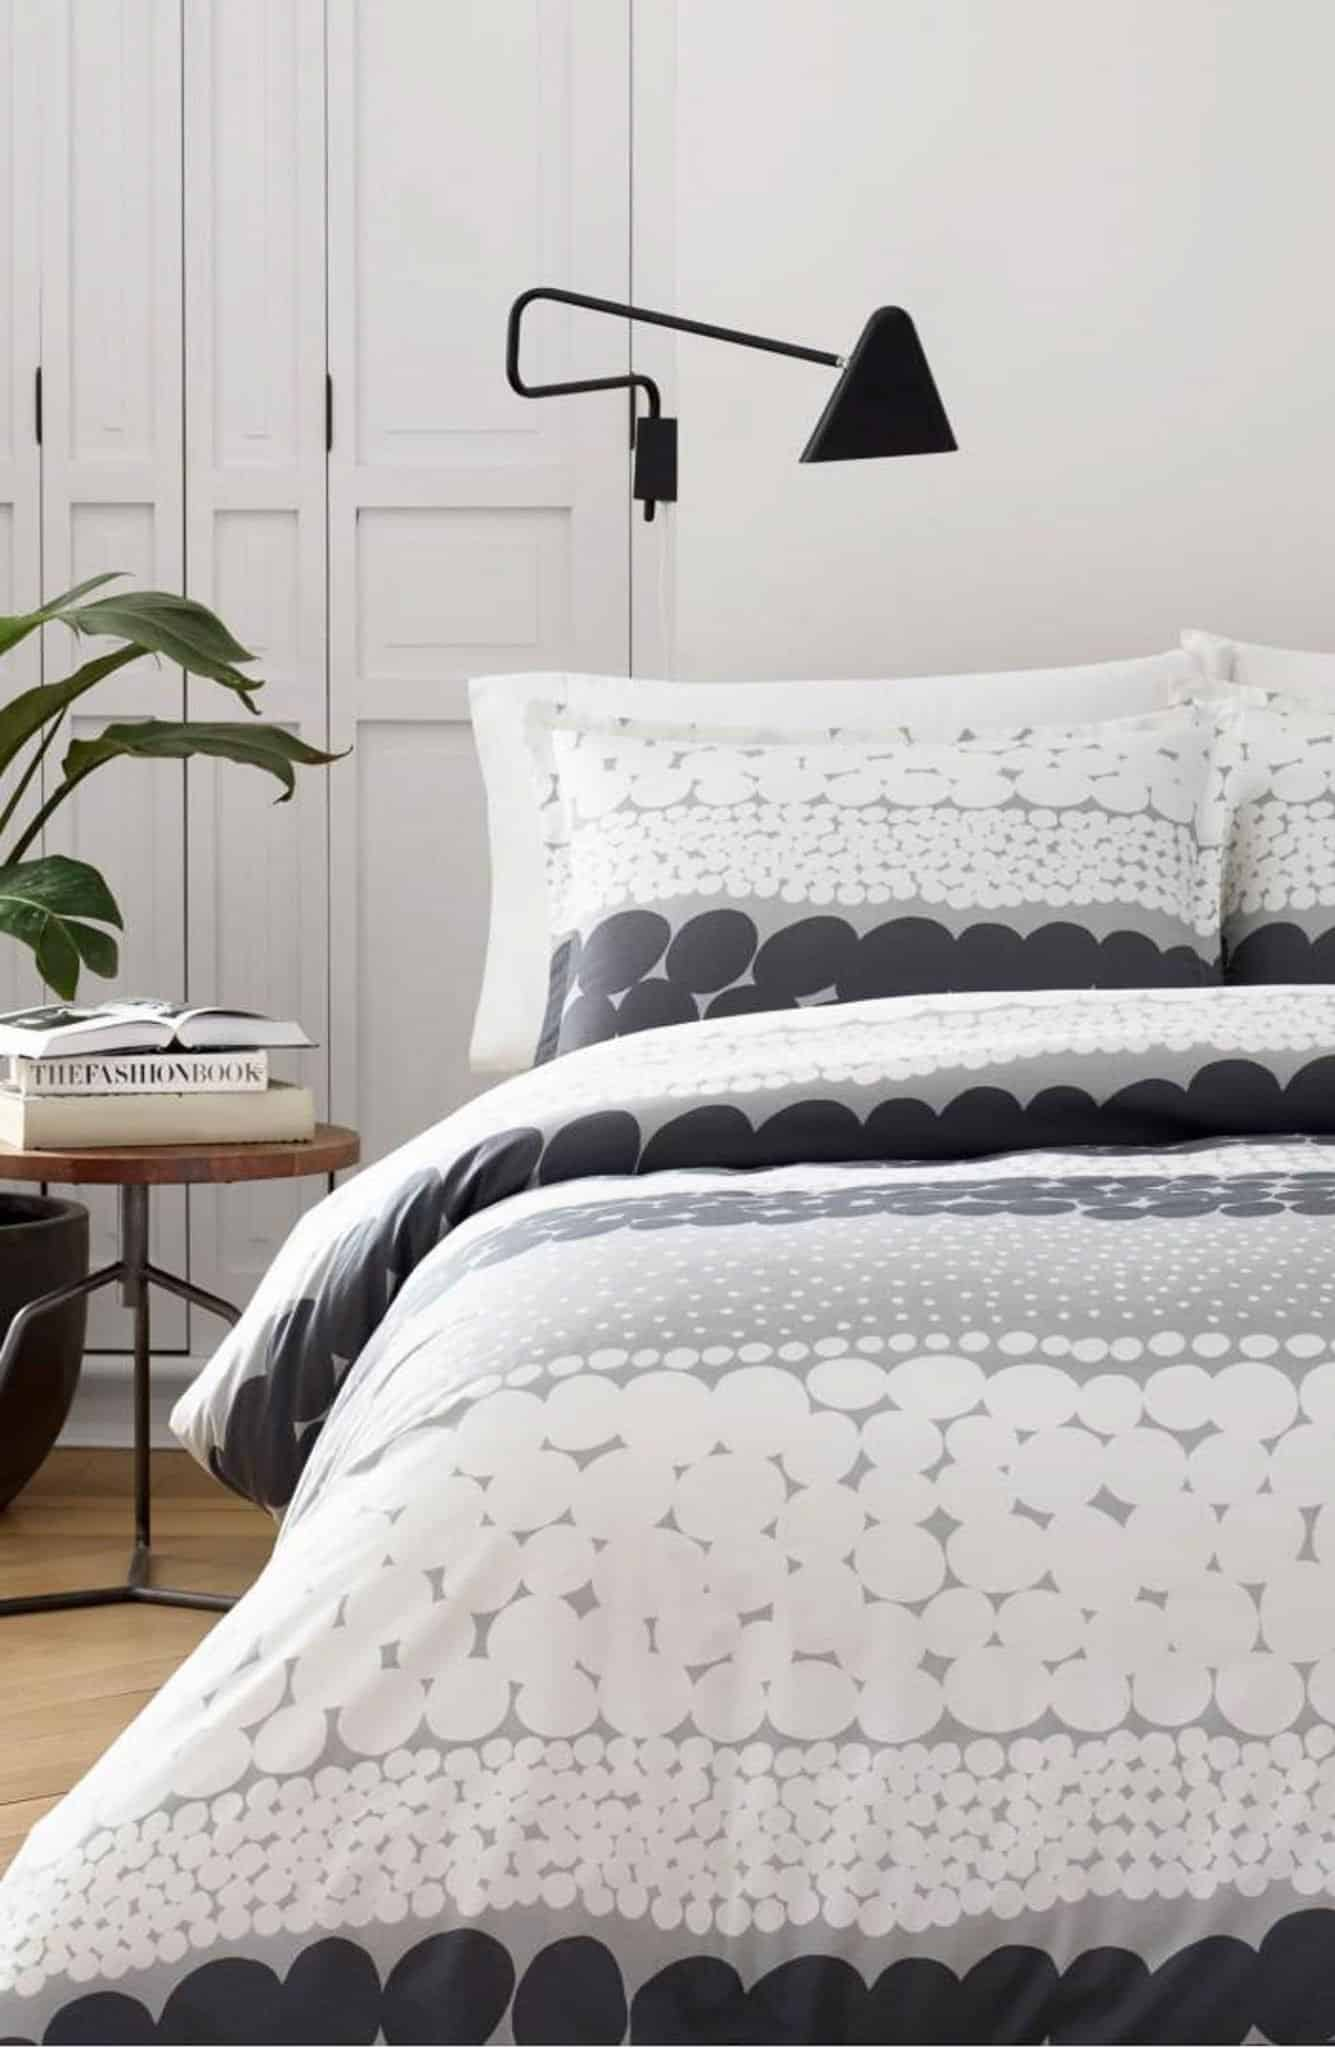 Best things to buy at nordstrom anniversary sale 2017 home for Home decor sale